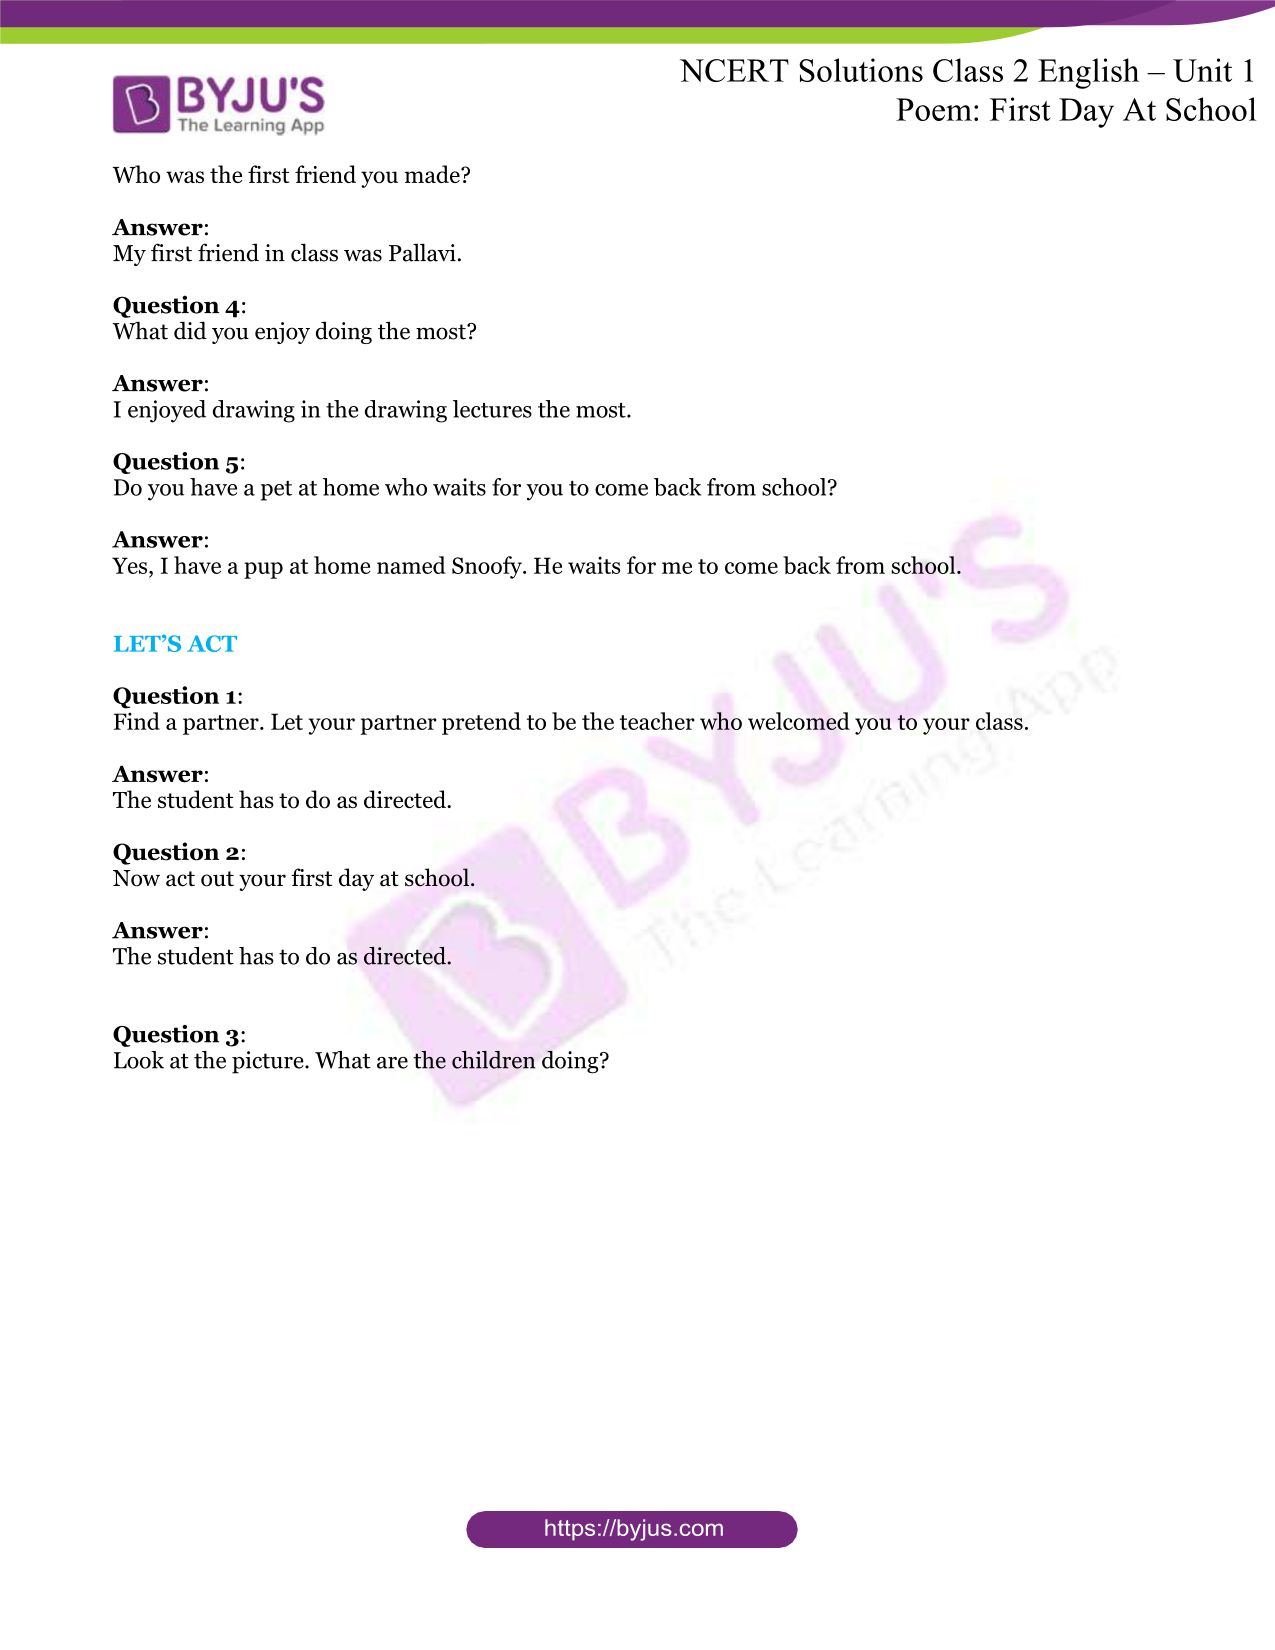 NCERT Solutions for Class 2 English Unit 1 Poem First Day ...